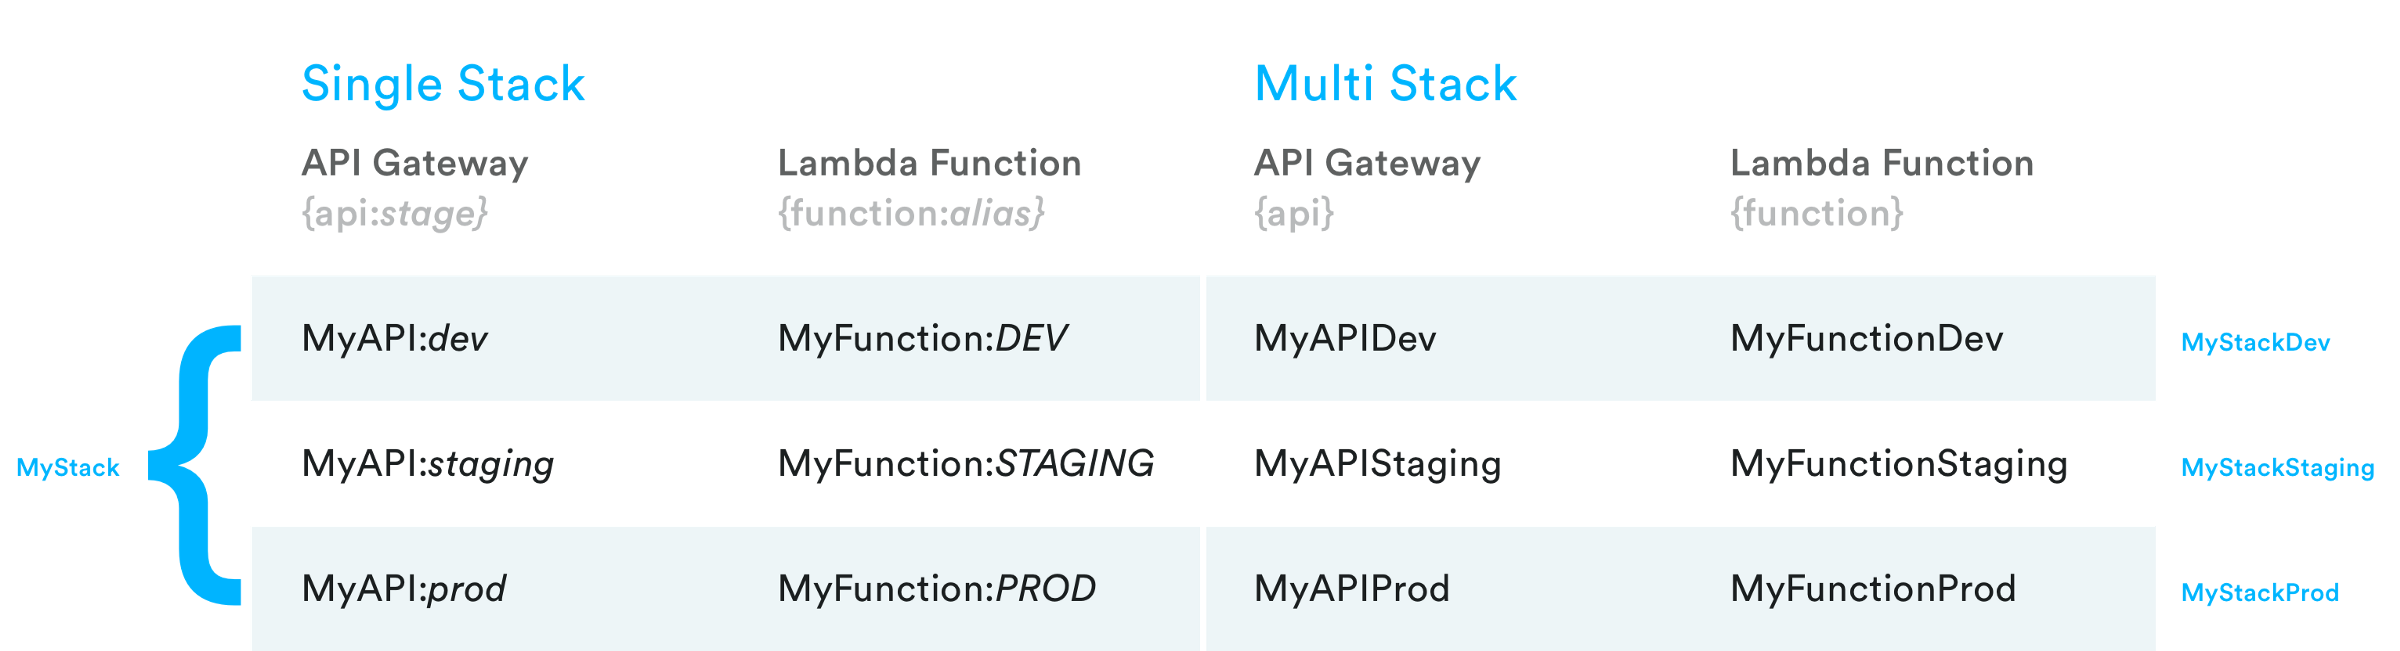 Managing a multi-environment serverless architecture in AWS - By